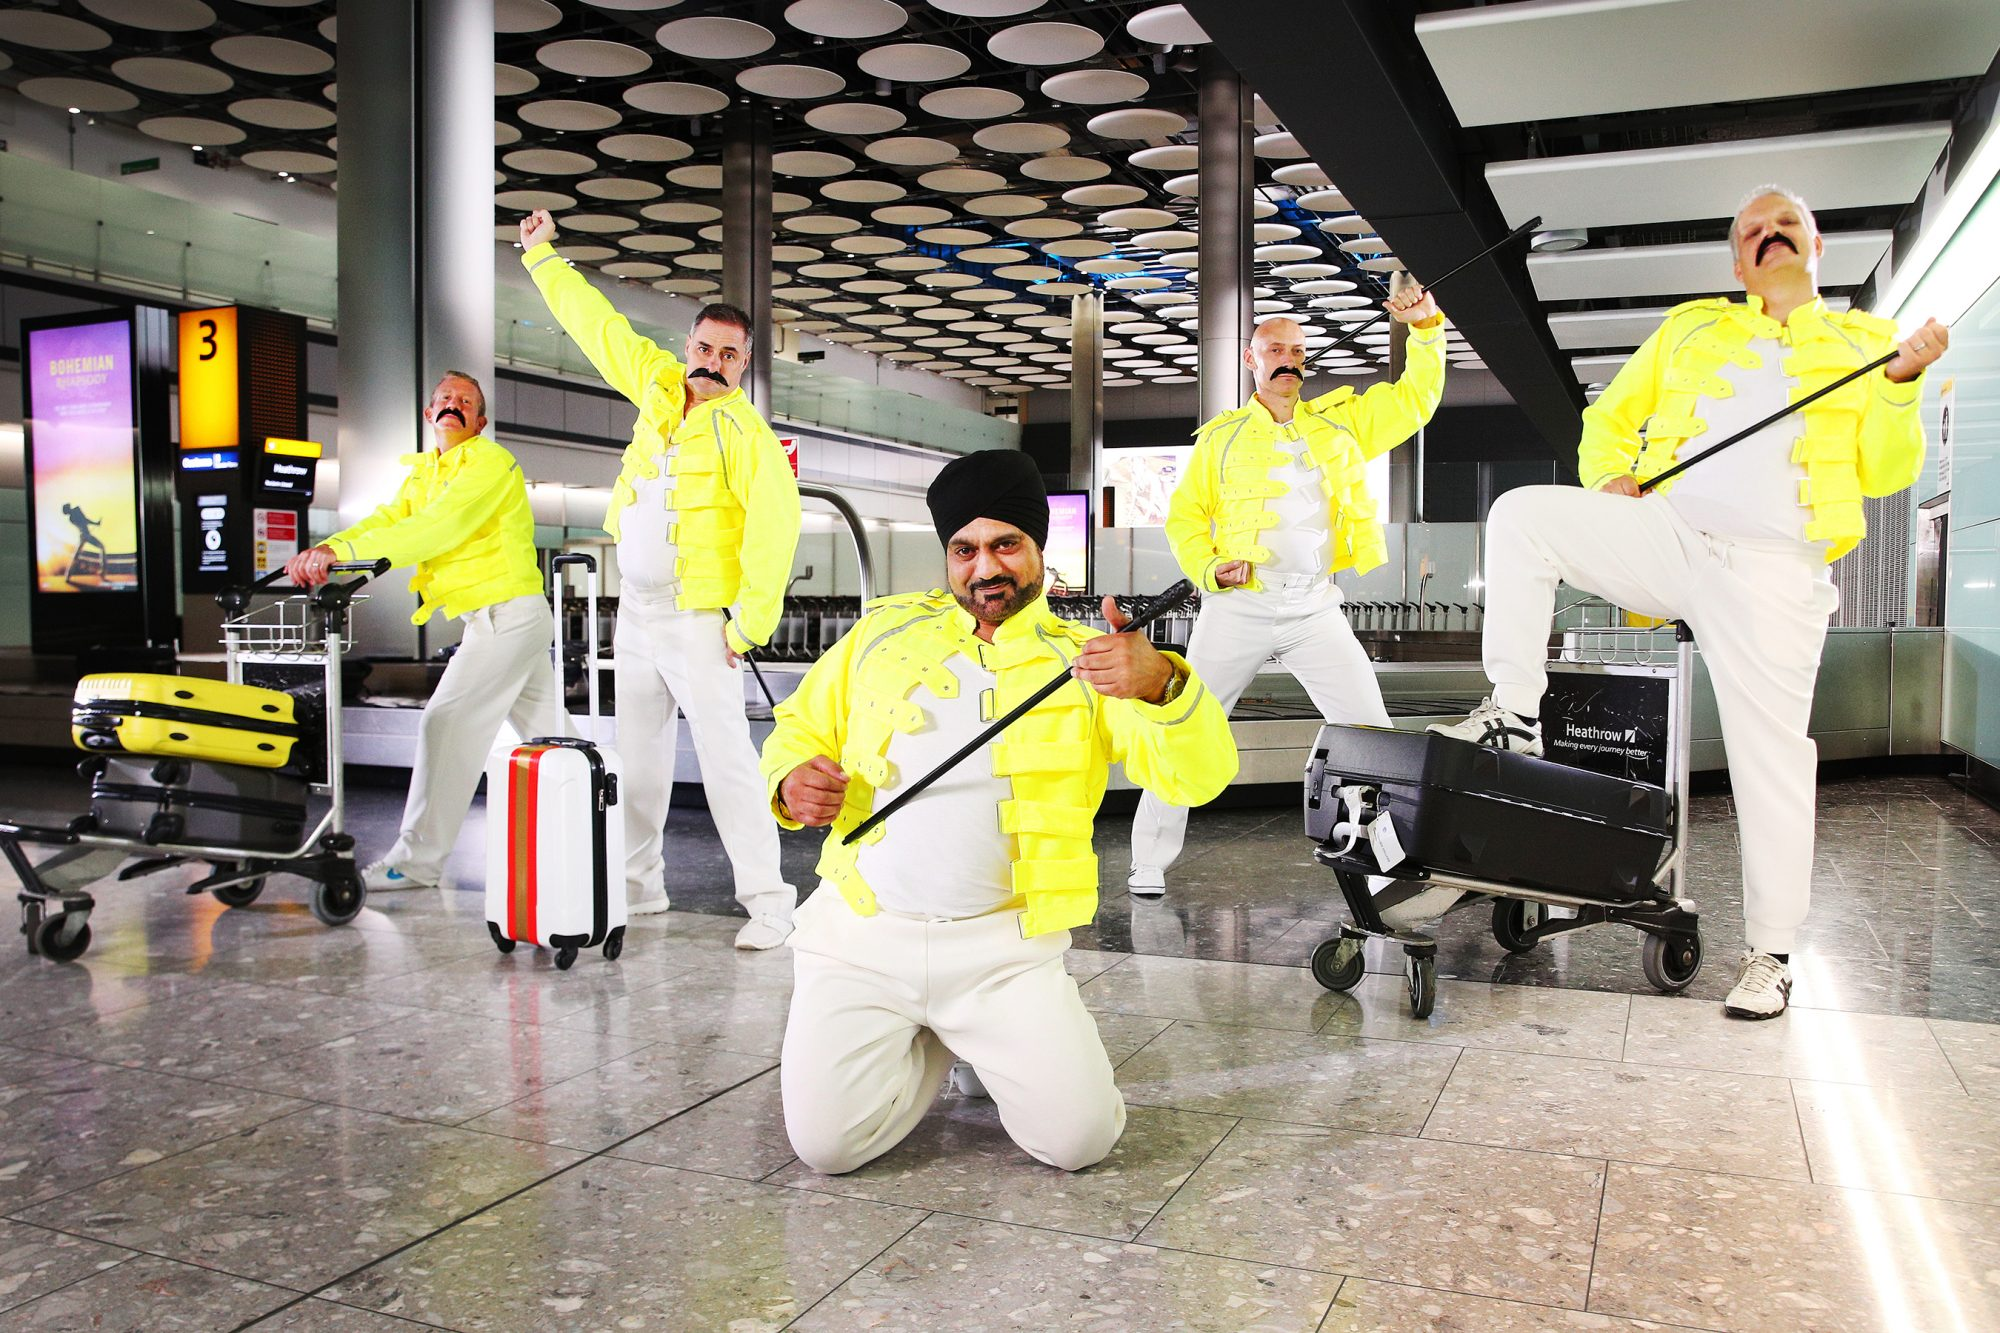 Baggage handlers perform tributes to Freddie Mercury, Heathrow, UK, 4th September 2018